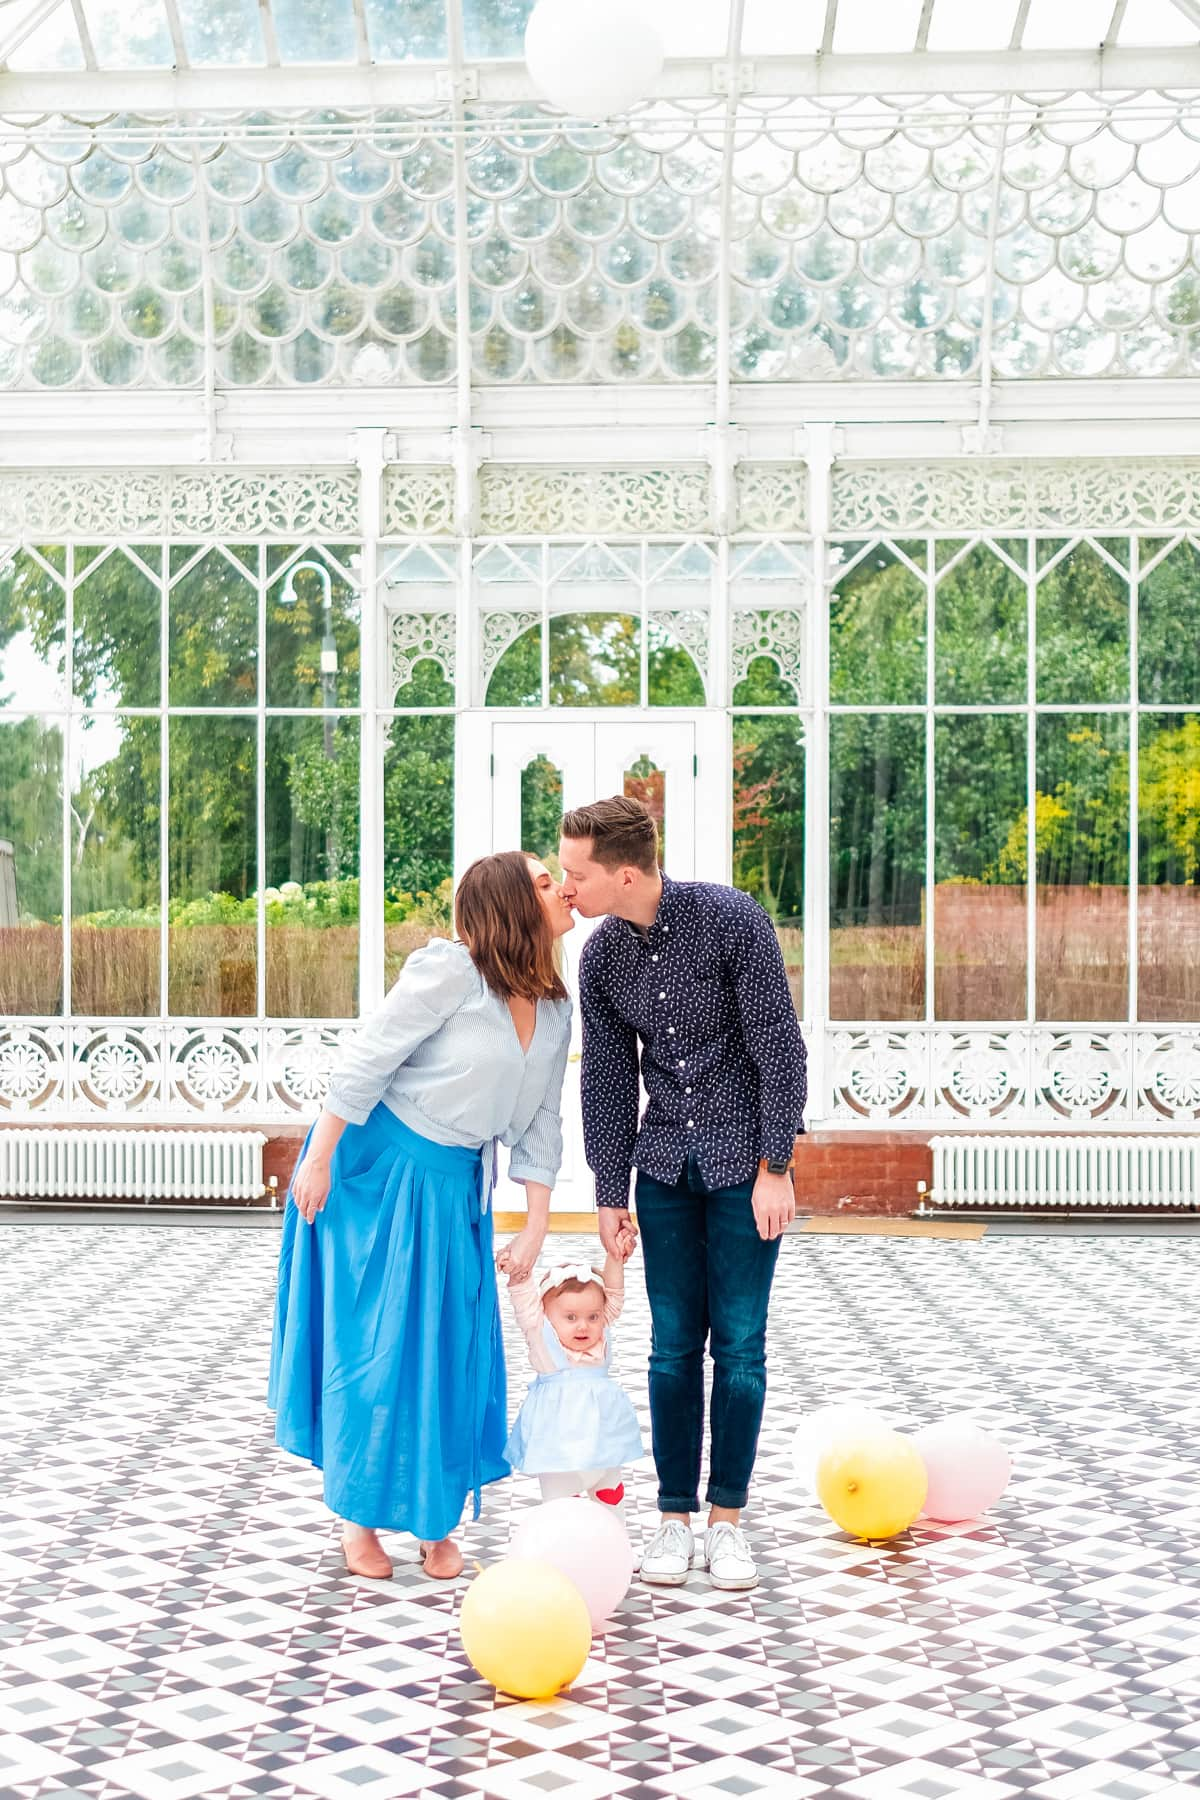 family photos at Horniman Gardens London - Photos of Our British Isles Cruise with Family! | Part 1 # travel #familytravel #cruise #decor #design #britishisles